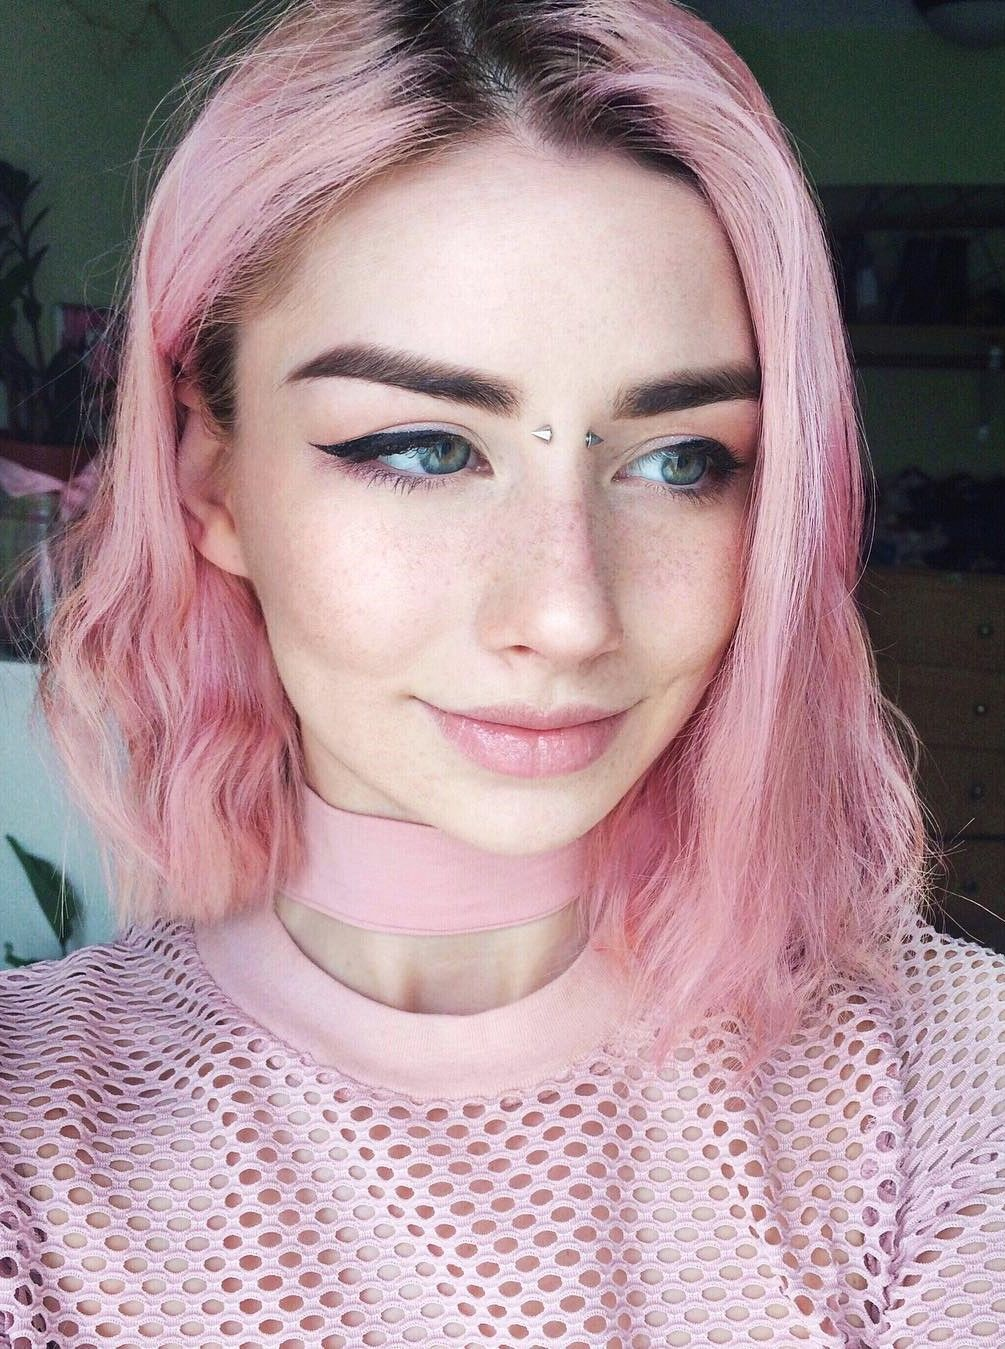 35 Edgy Hair Color Ideas To Try Right Now Pastel Pink Hair Pink Hair Dye Pastel Pink Hair Dye